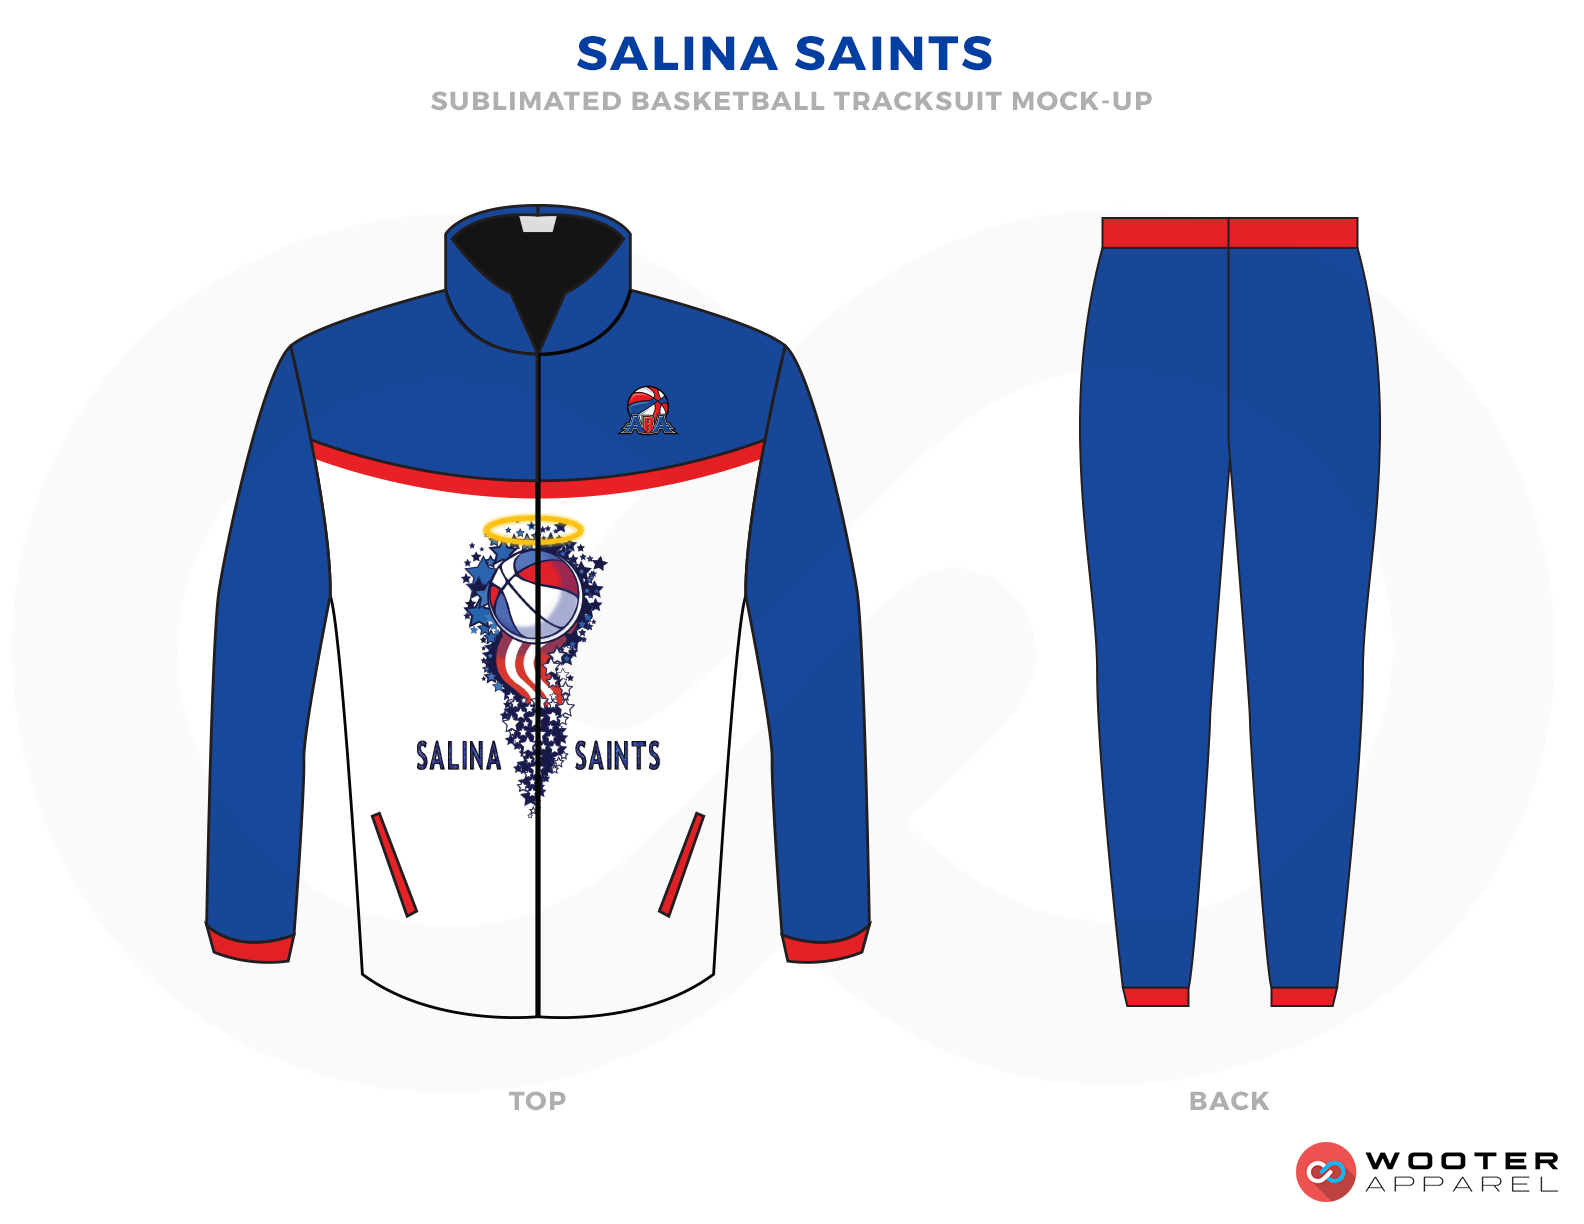 SALINA SAINTS White Blue and Red Basketball Uniforms, Jackets and Trousers